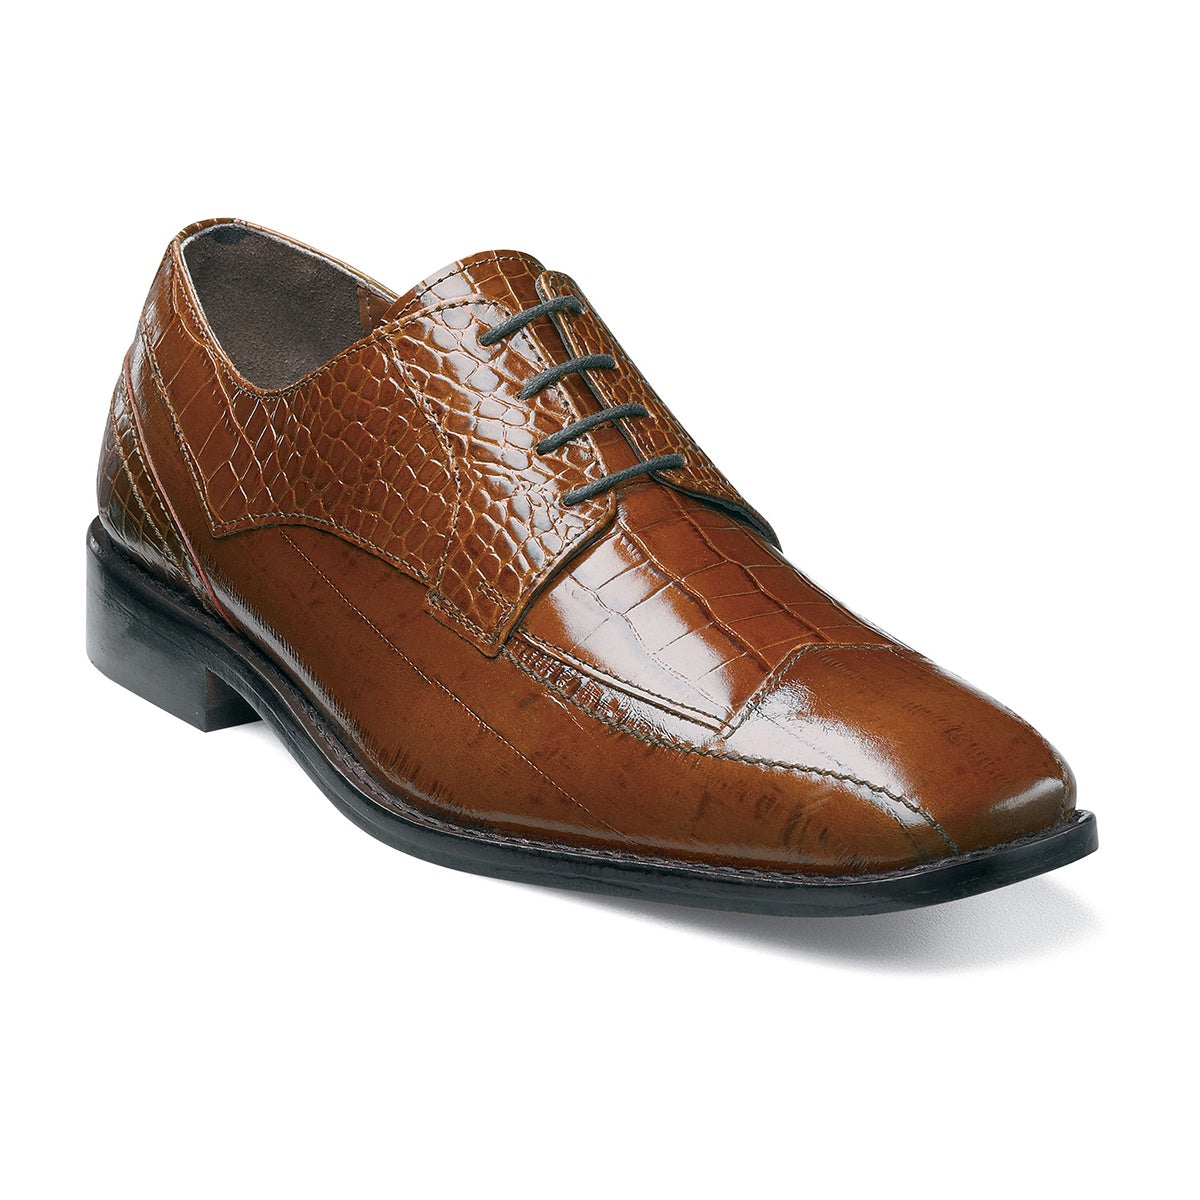 Stacy Adams Tarviso Oxford - Tobacco Shoes - Dapperfam.com